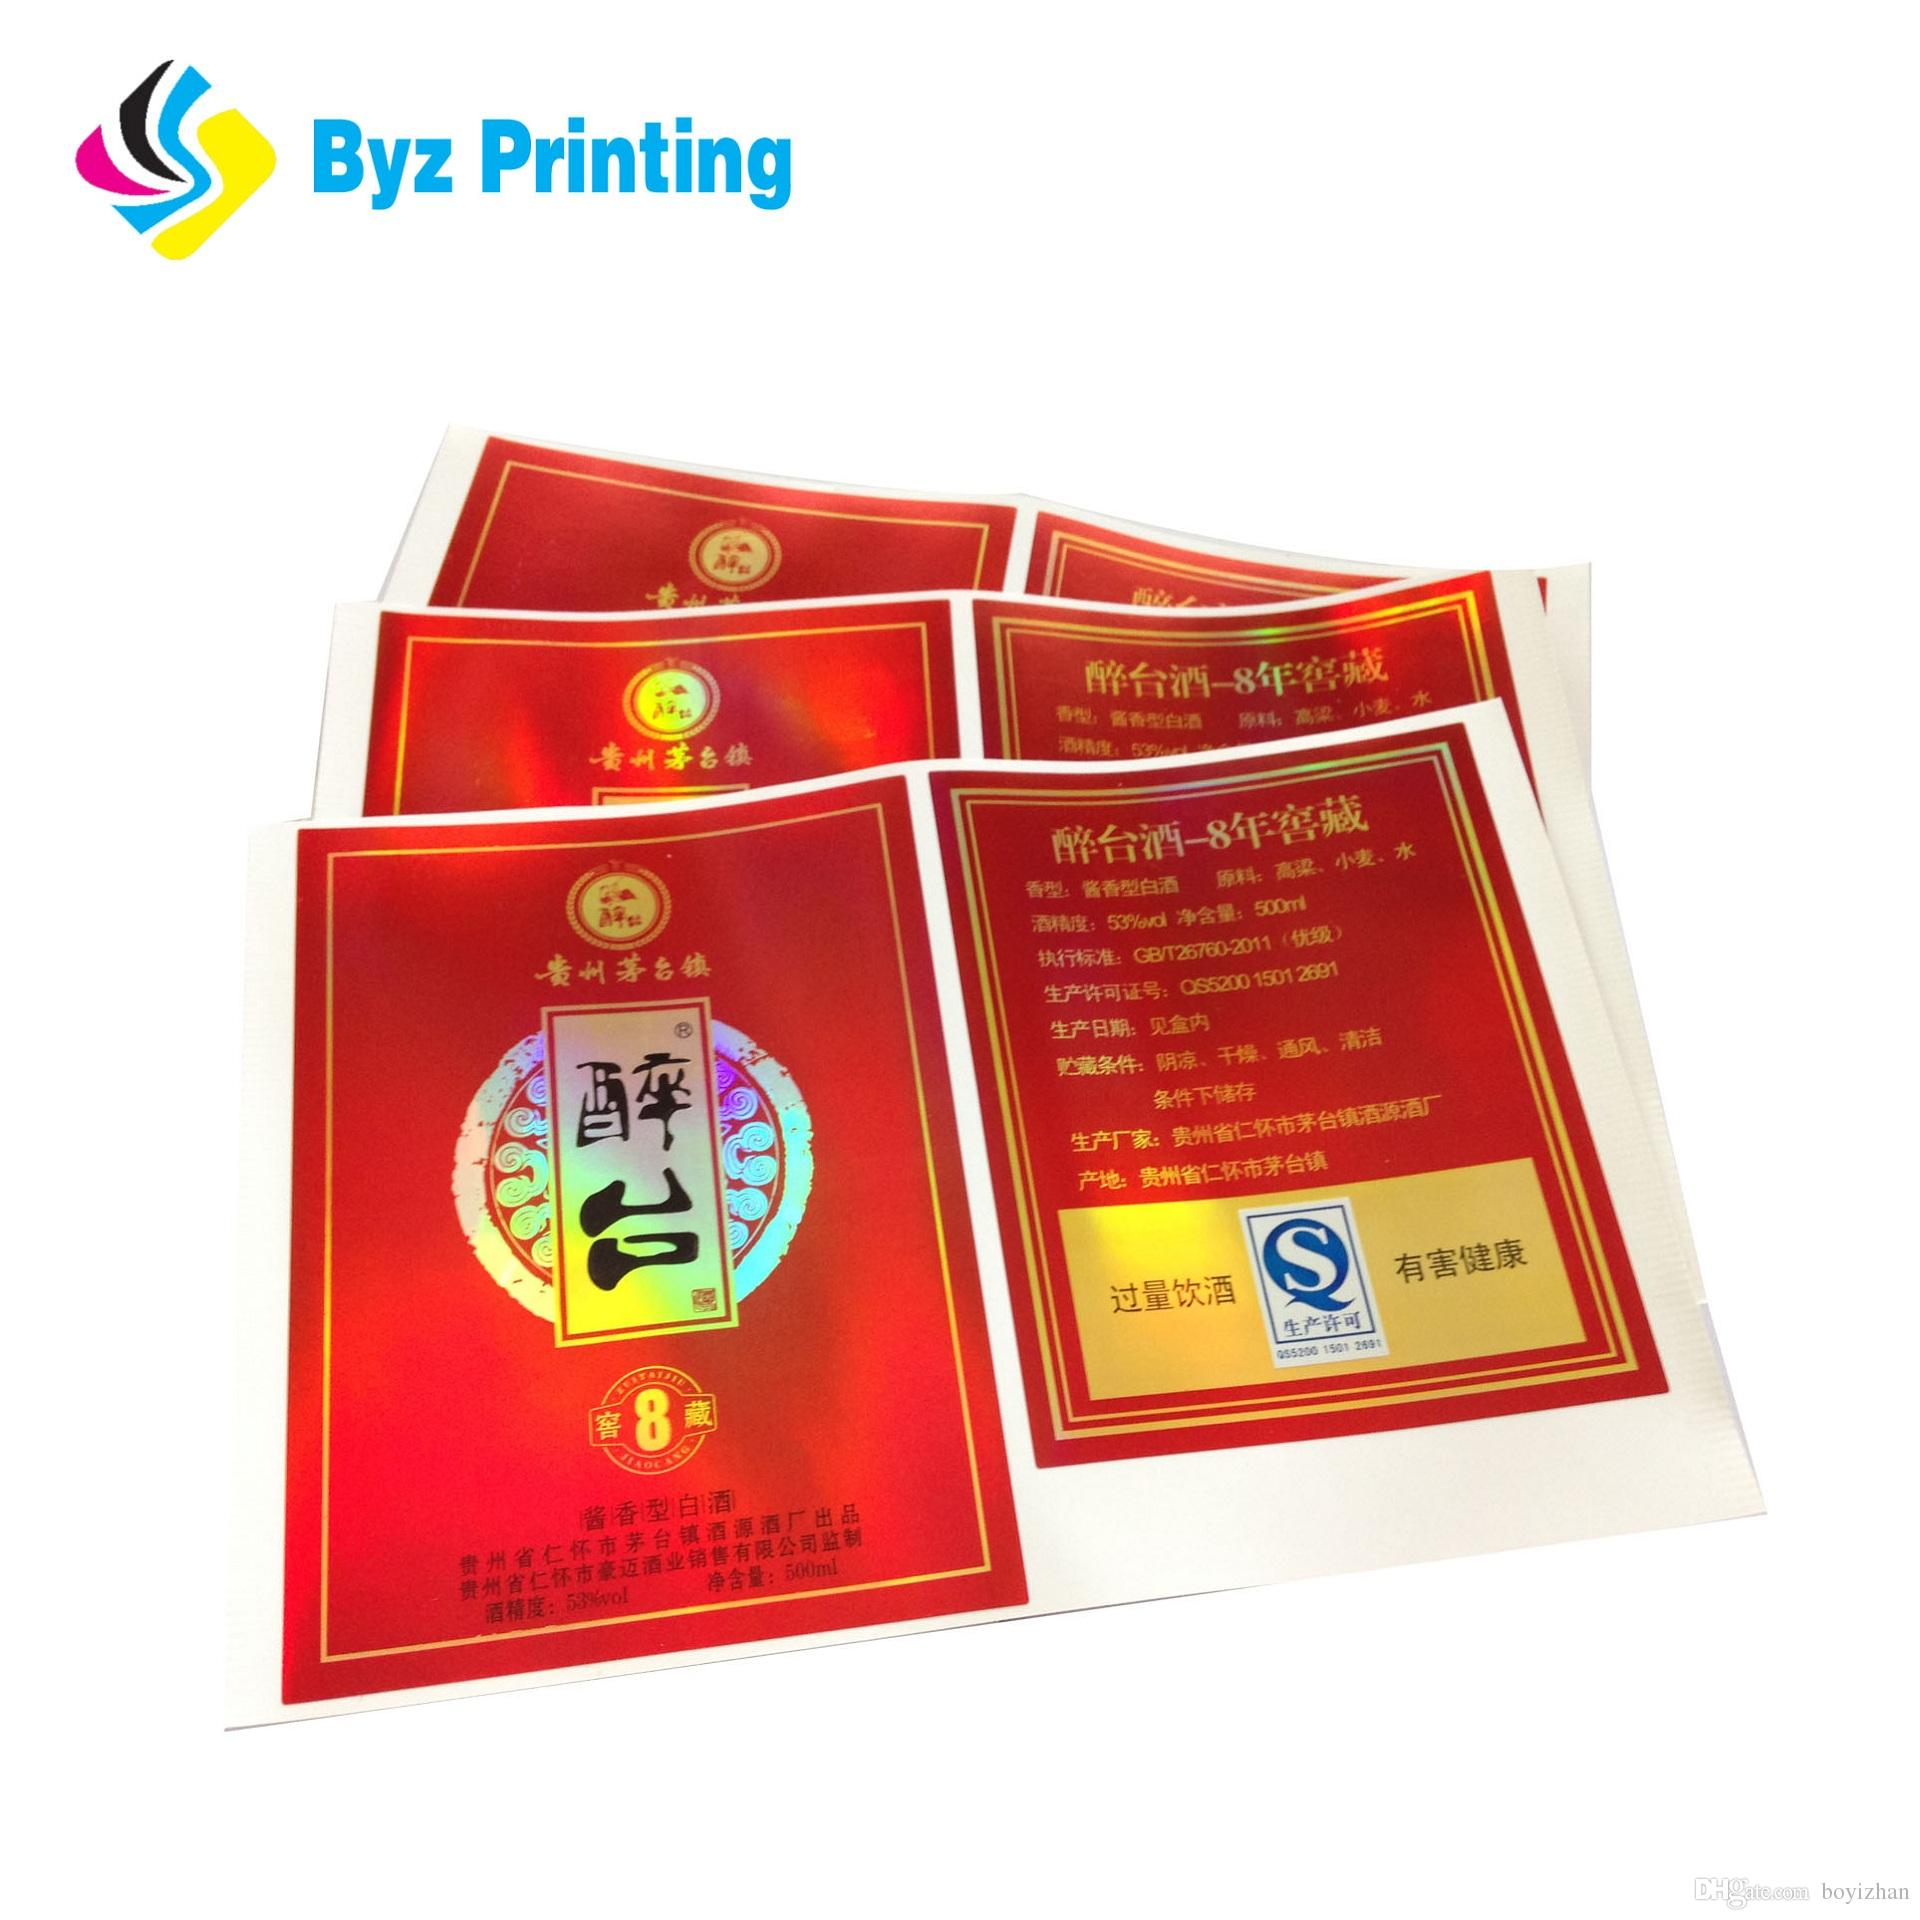 2019 2019 printing custom waterproof advertising sticker label service call labels from boyizhan 0 04 dhgate com